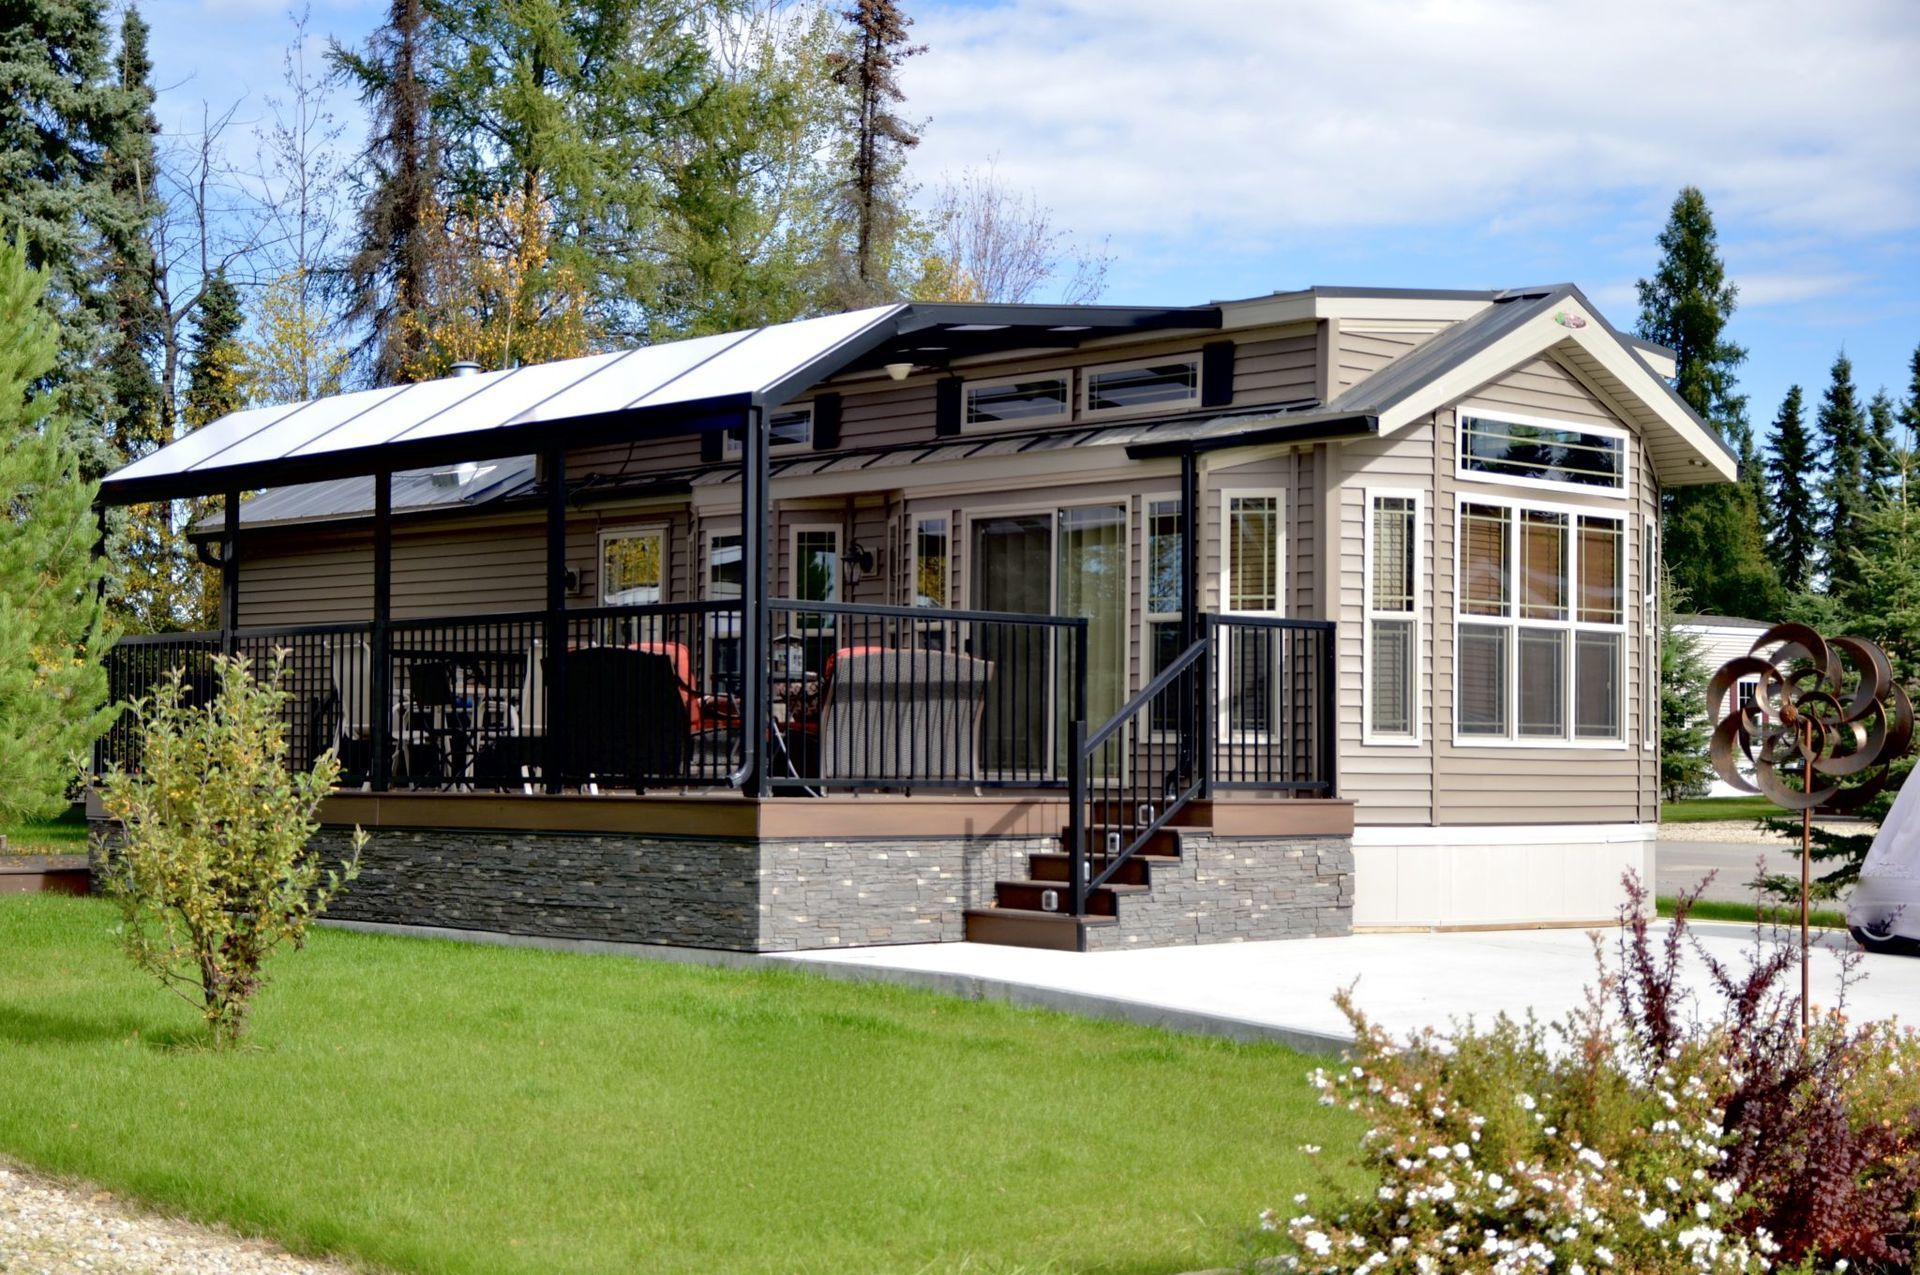 hight resolution of manufacturer of high quality custom built park models we offer the finest in park model living with our quality lines of park model homes designed